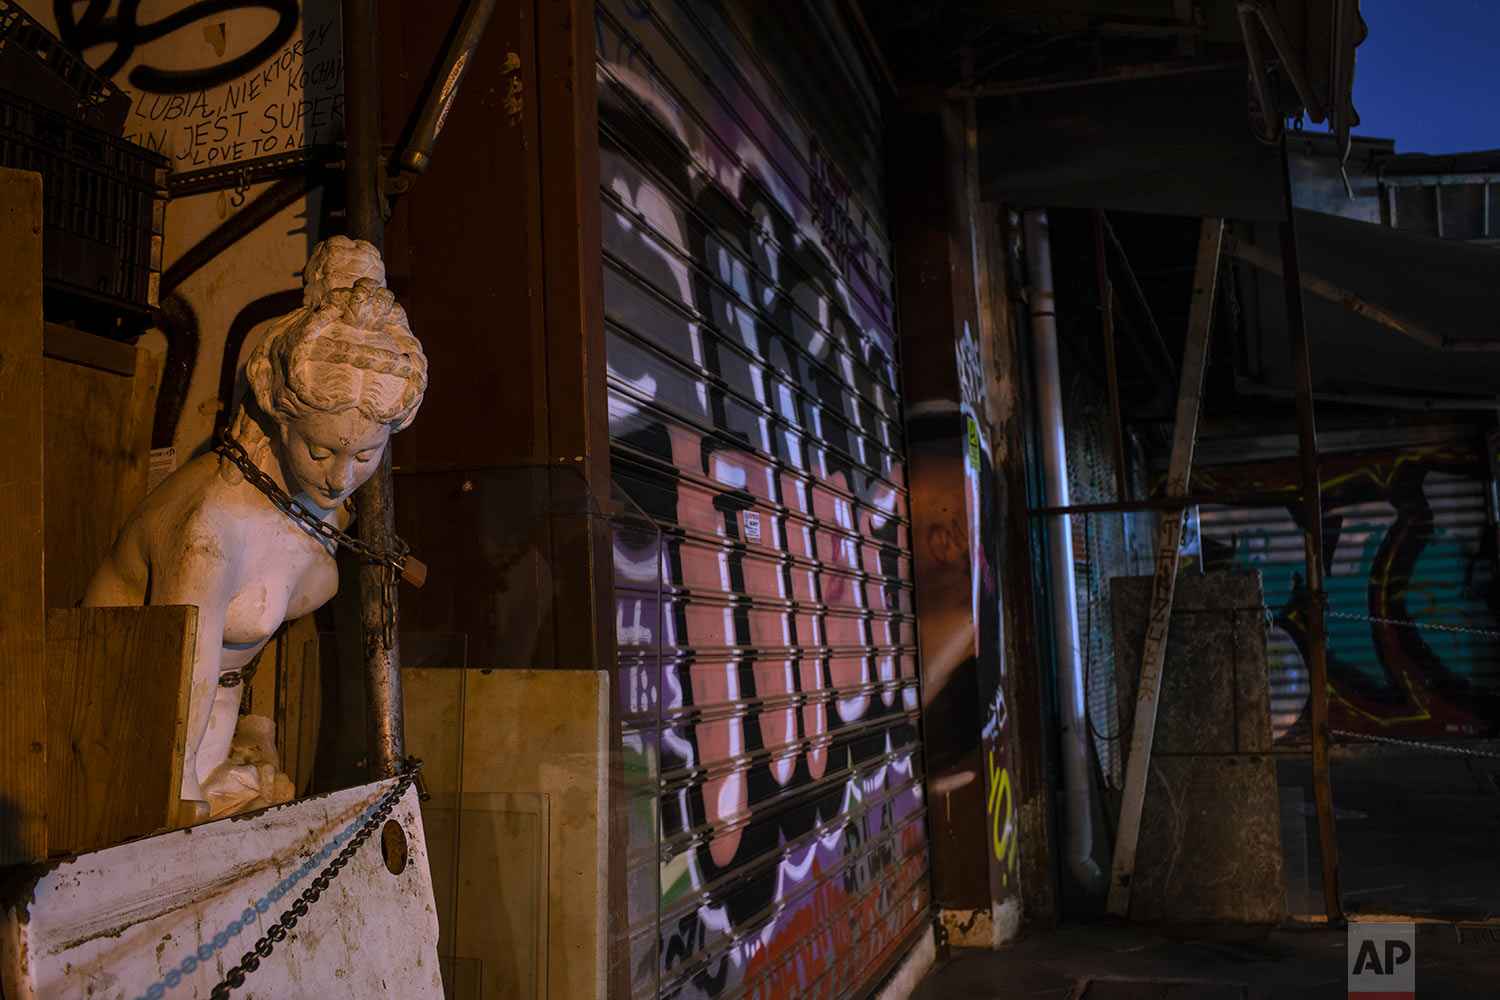 A modern copy of a statue of Aphrodite, ancient Greek Goddess of beauty, is chained to a wall outside a closed antique shop as shutters of other shops are covered with graffiti in Monastiraki district, central Athens, July 22, 2019. (AP Photo/Petros Giannakouris)